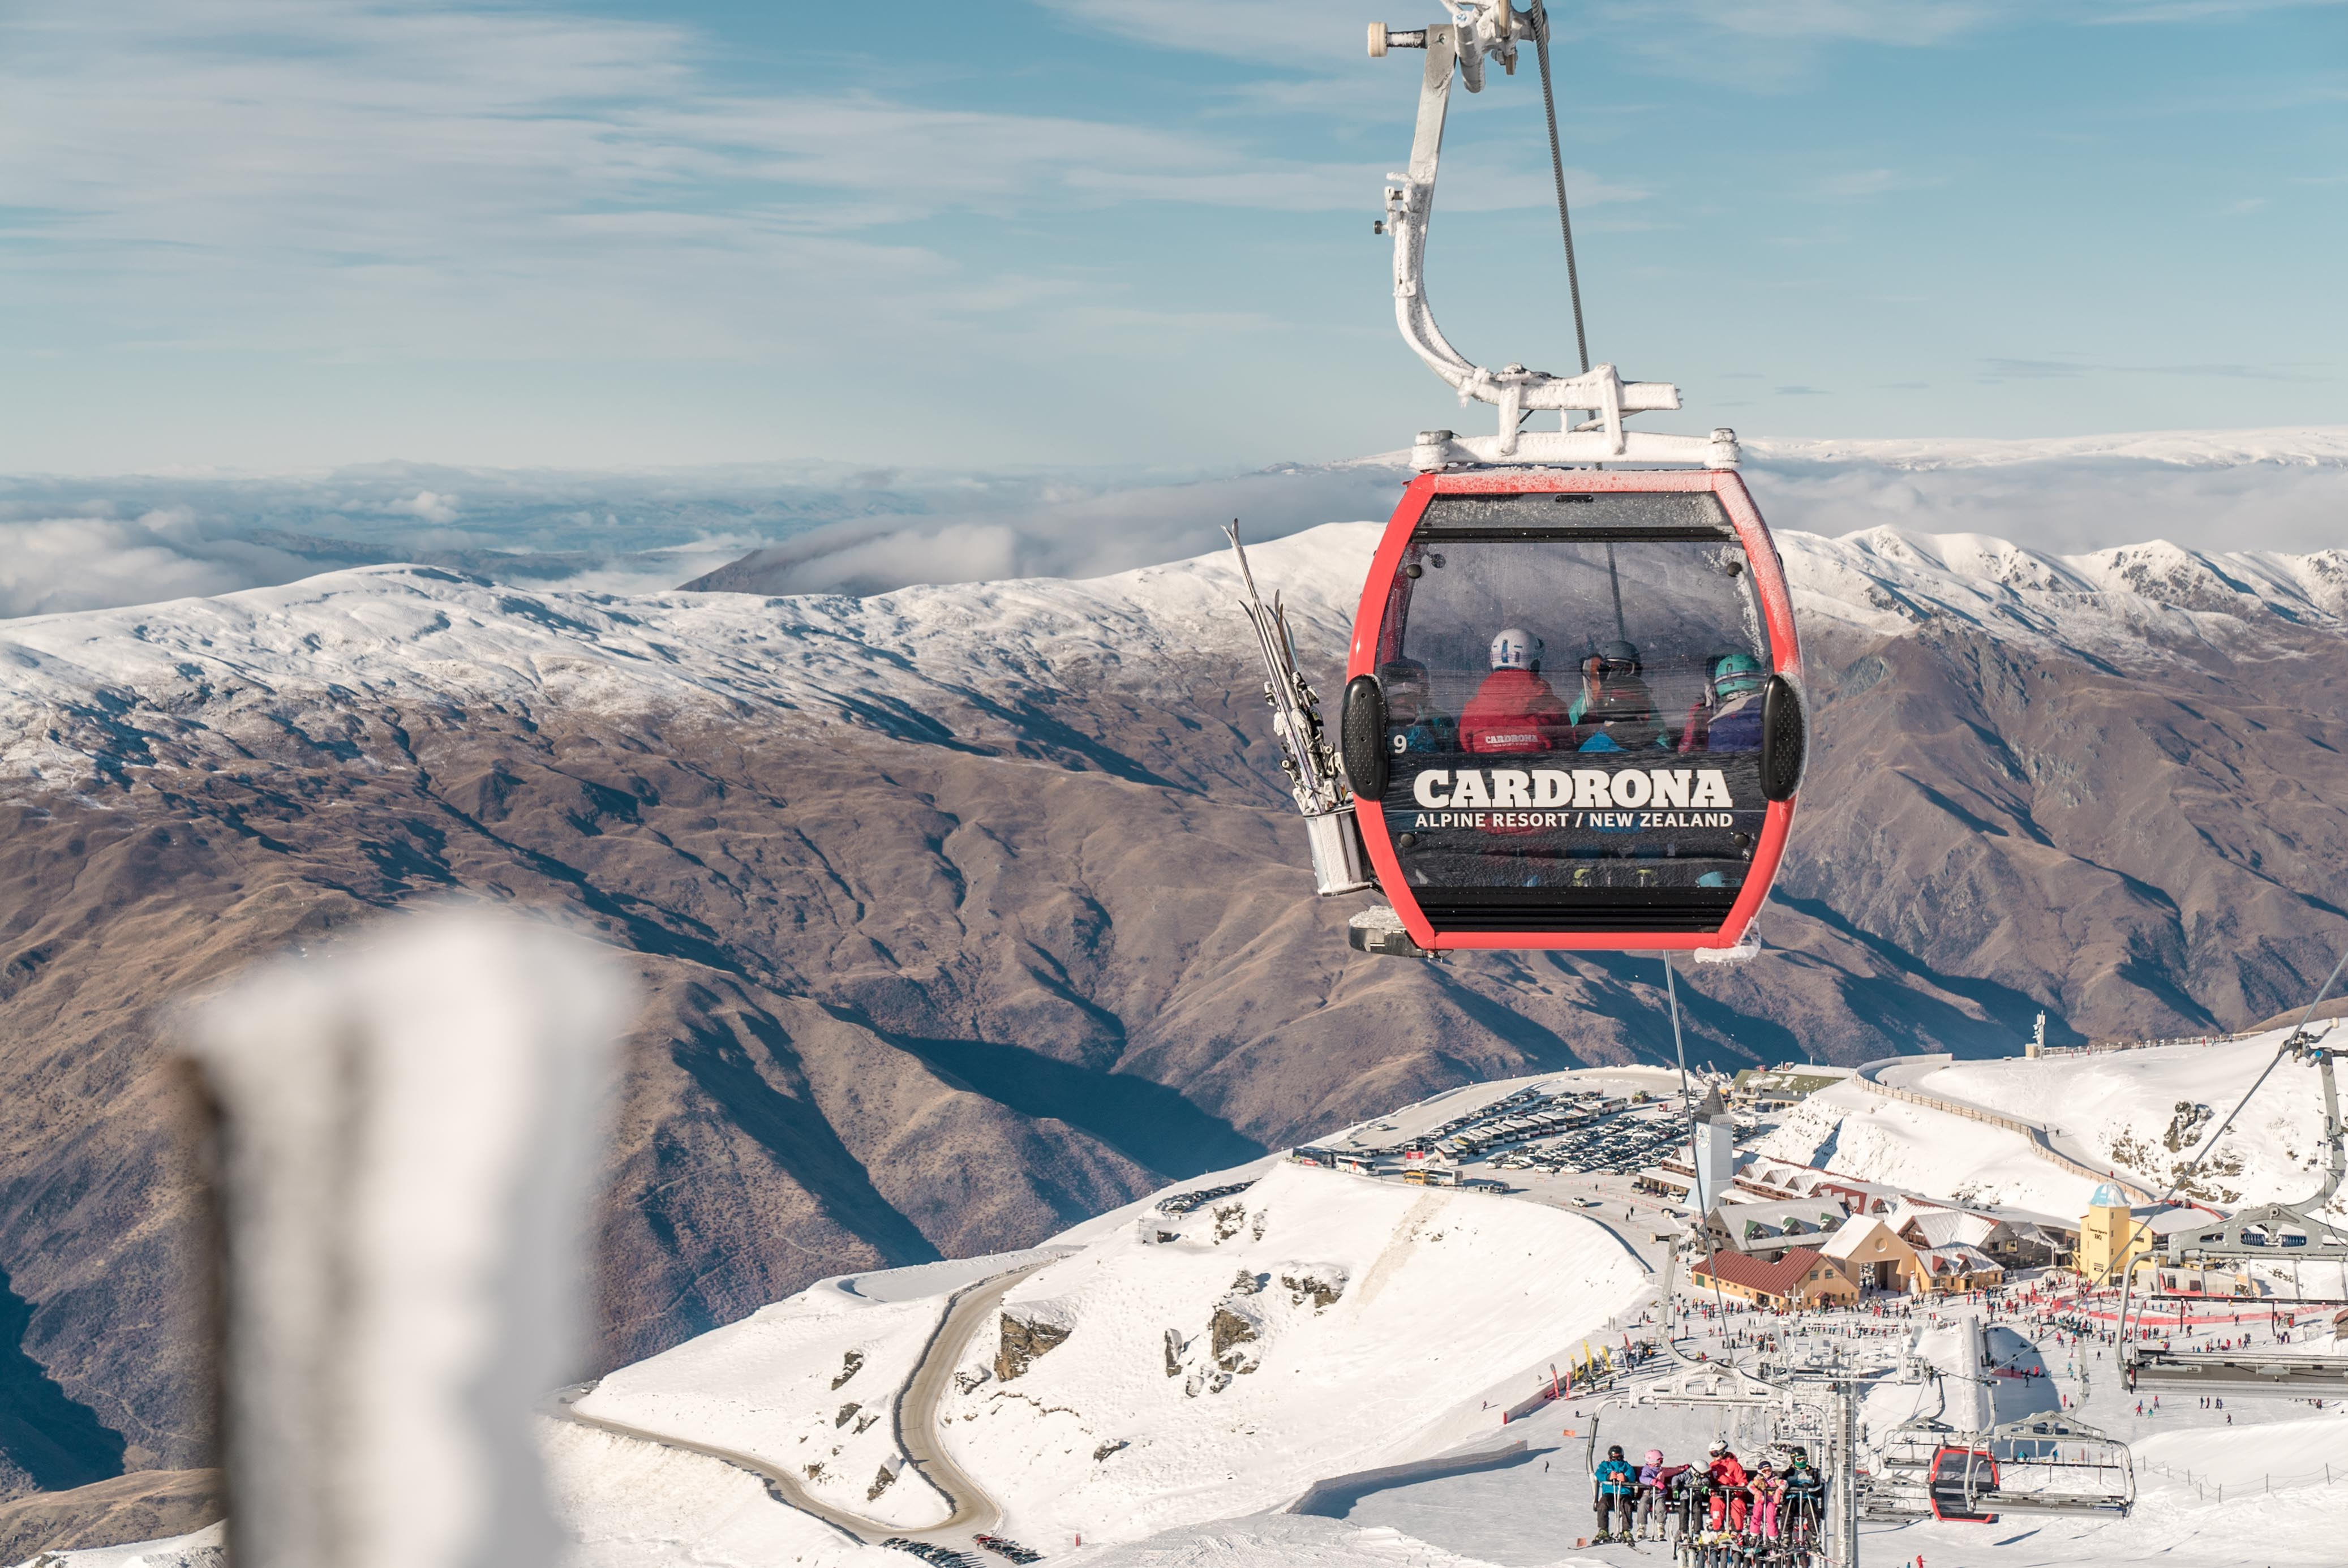 Cardrona how to ski and snowboard